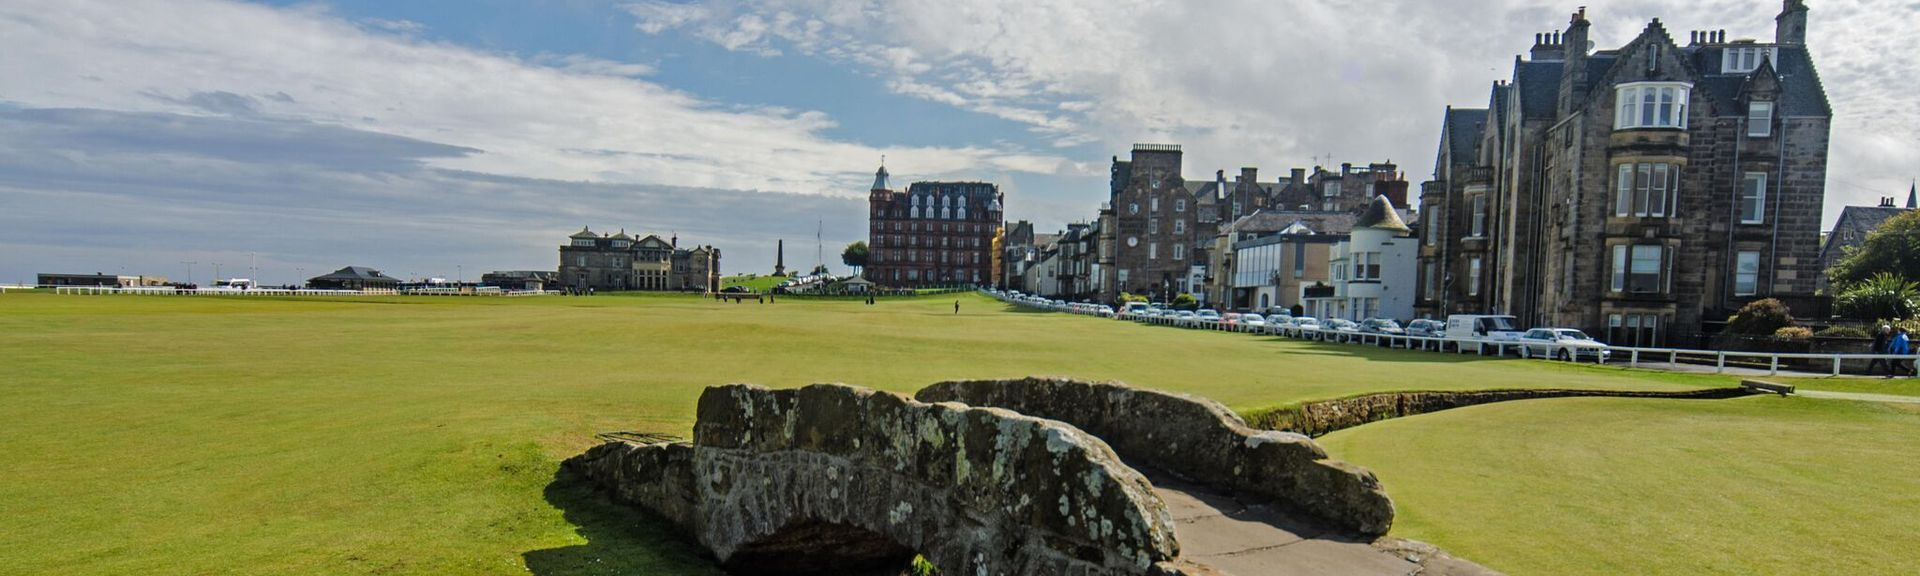 St. Andrews, Scotland, United Kingdom